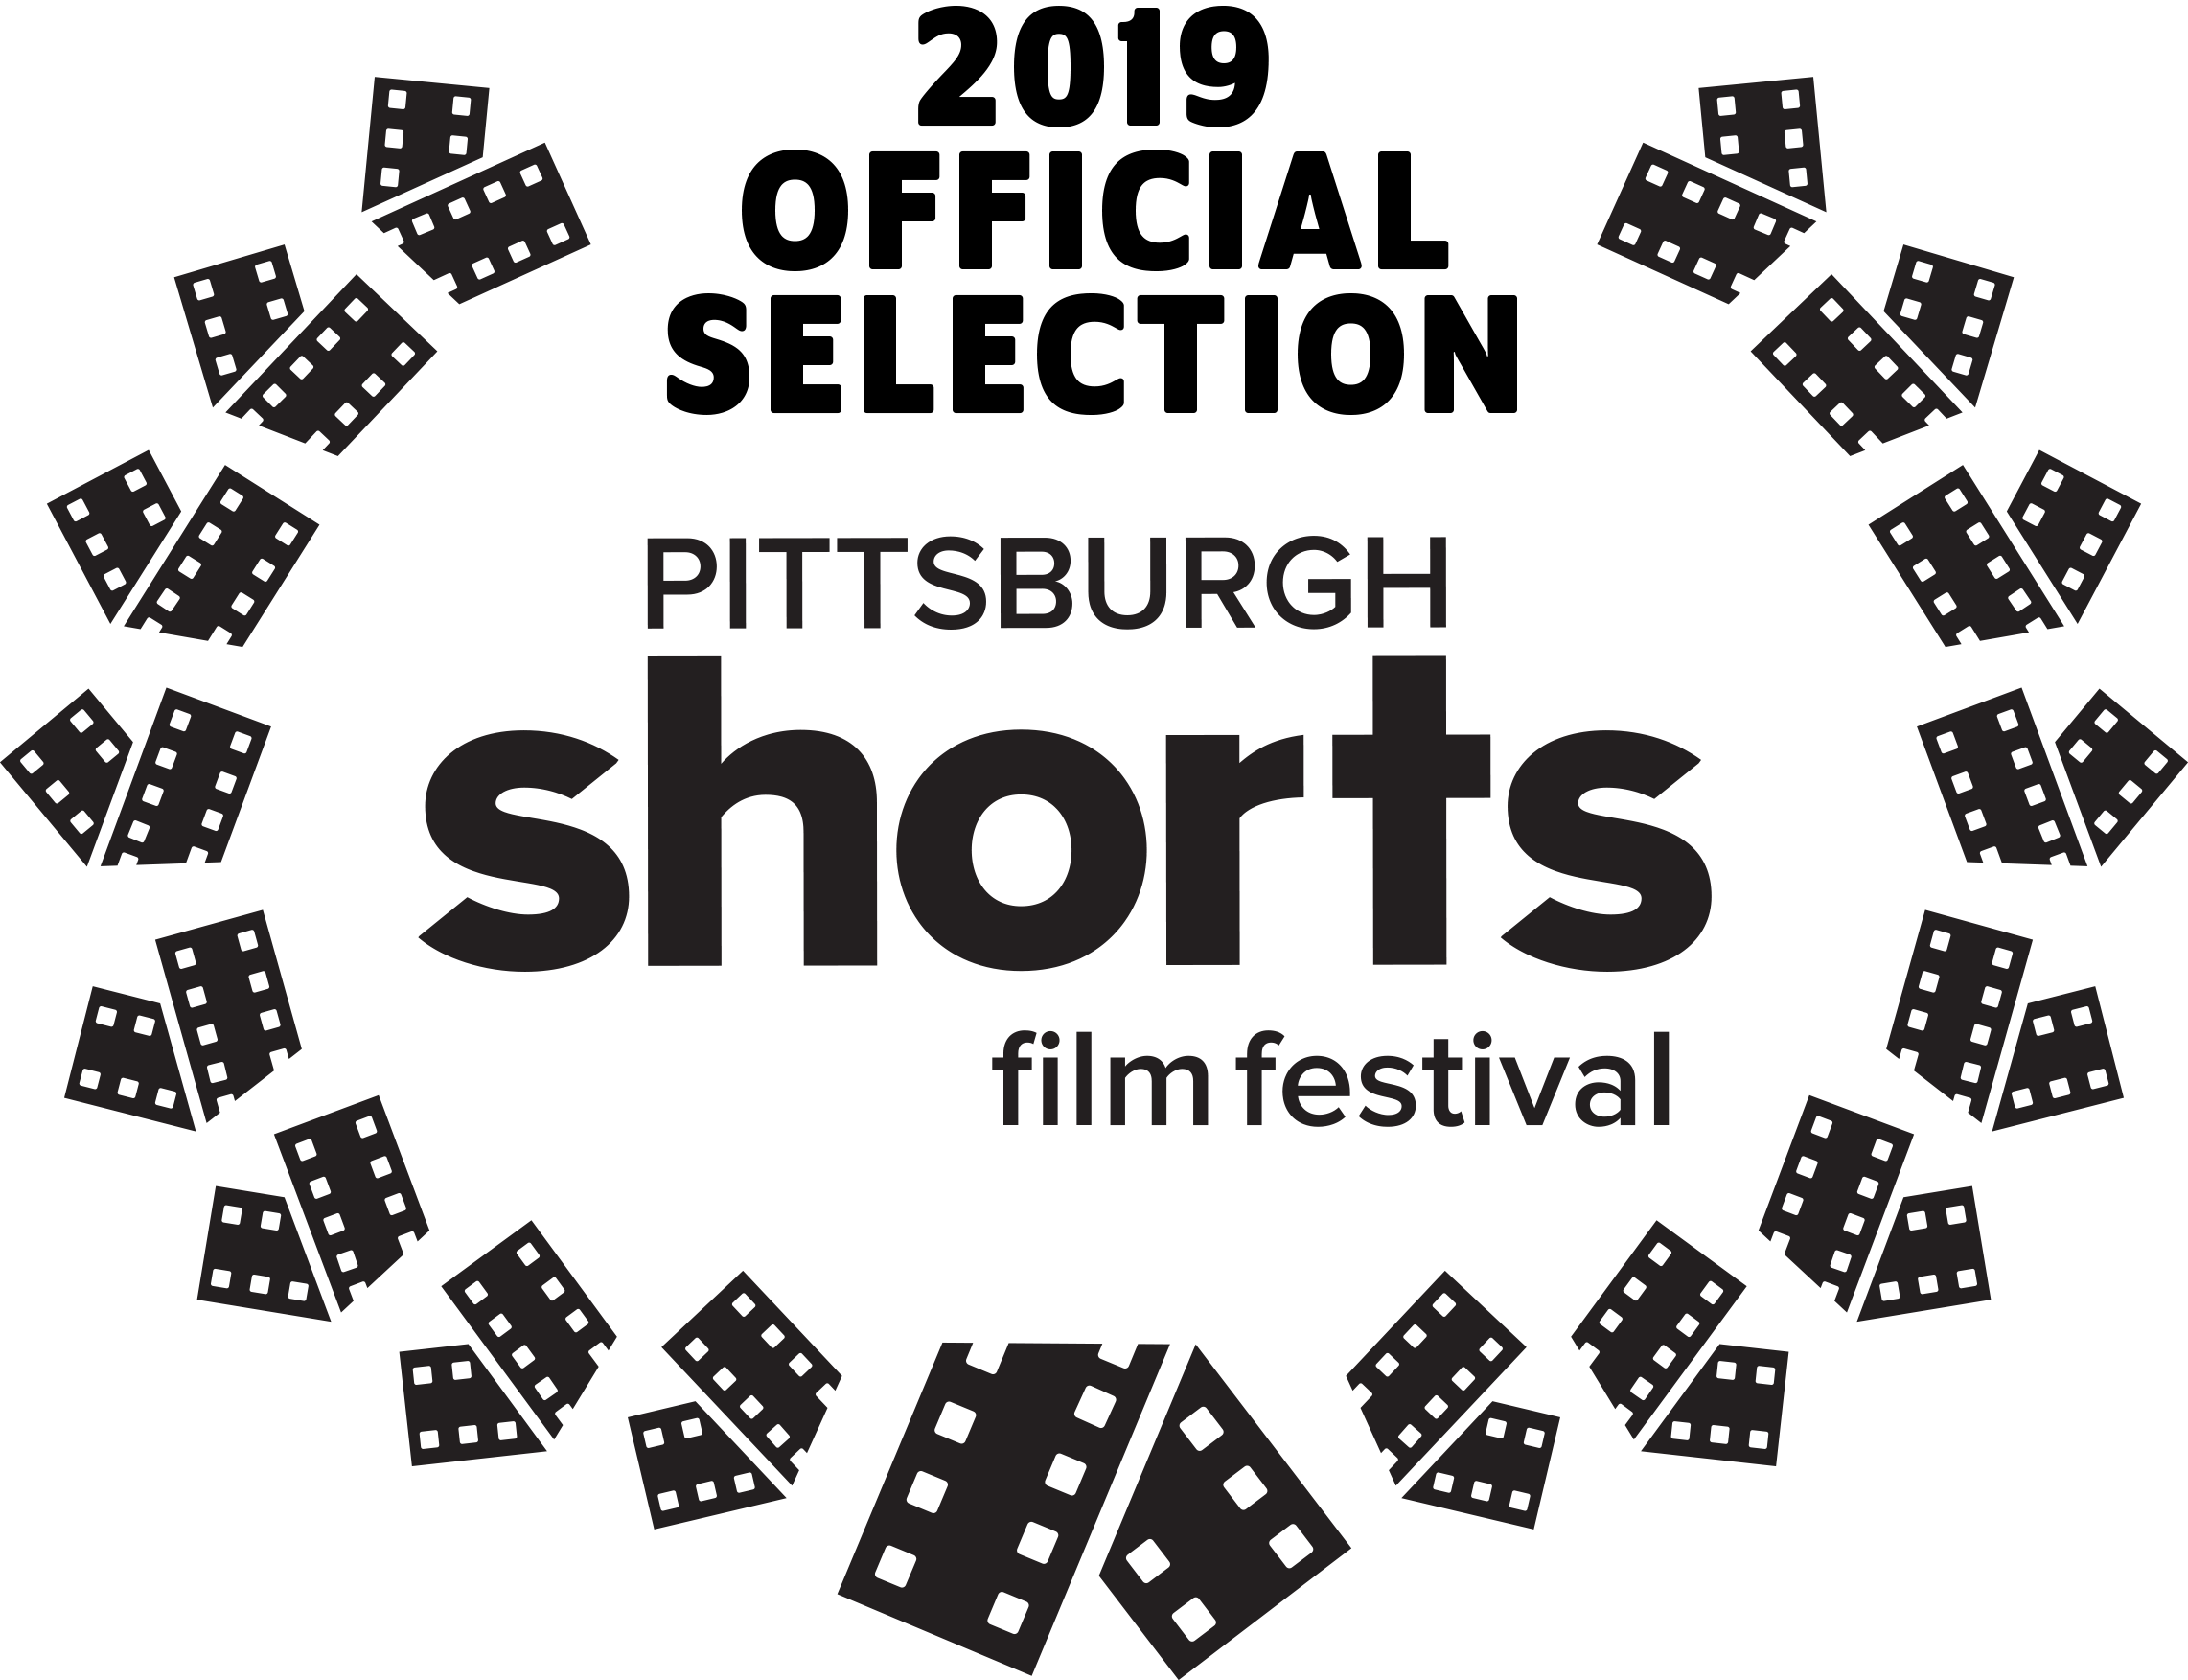 The Bicycle Thief selected to screen at Pittsburgh Shorts in November